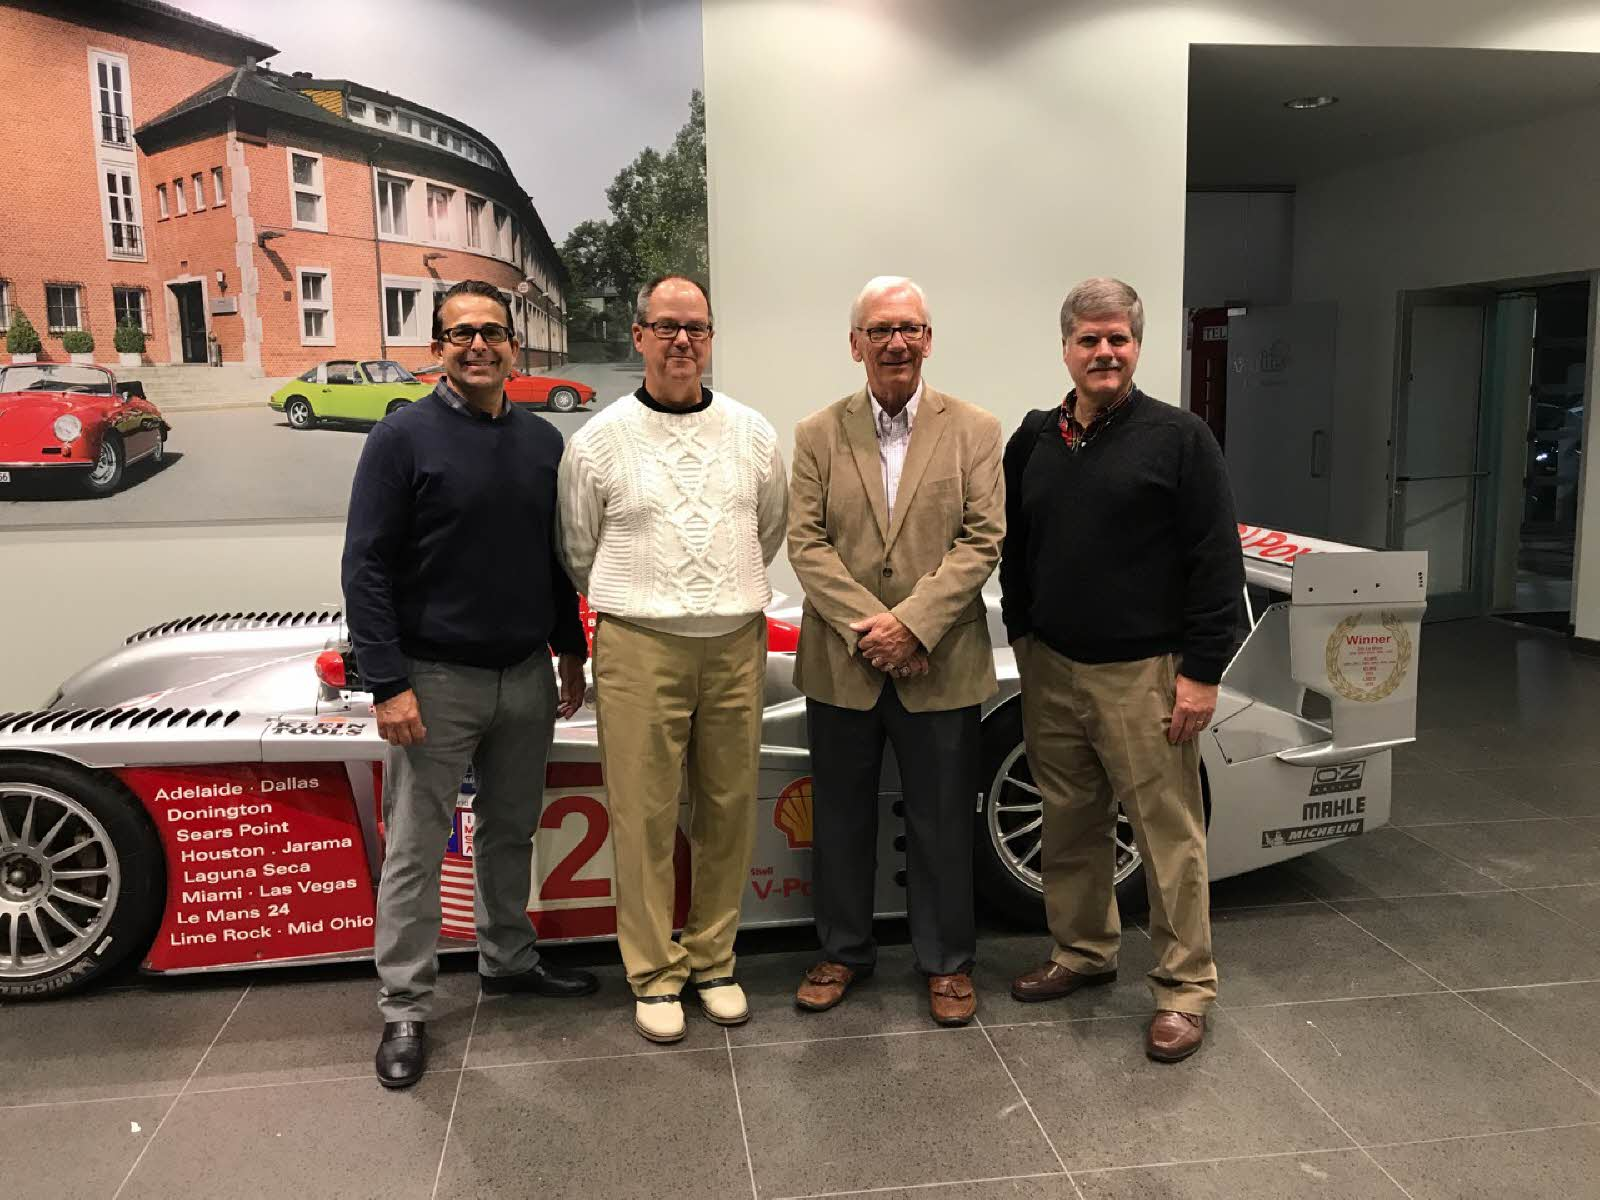 Eddie LePine, Tim Brookhart of White Allen, Jack Webster and David Pawlik by the Audi R8 at the book launch. [Jack Webster Photo]